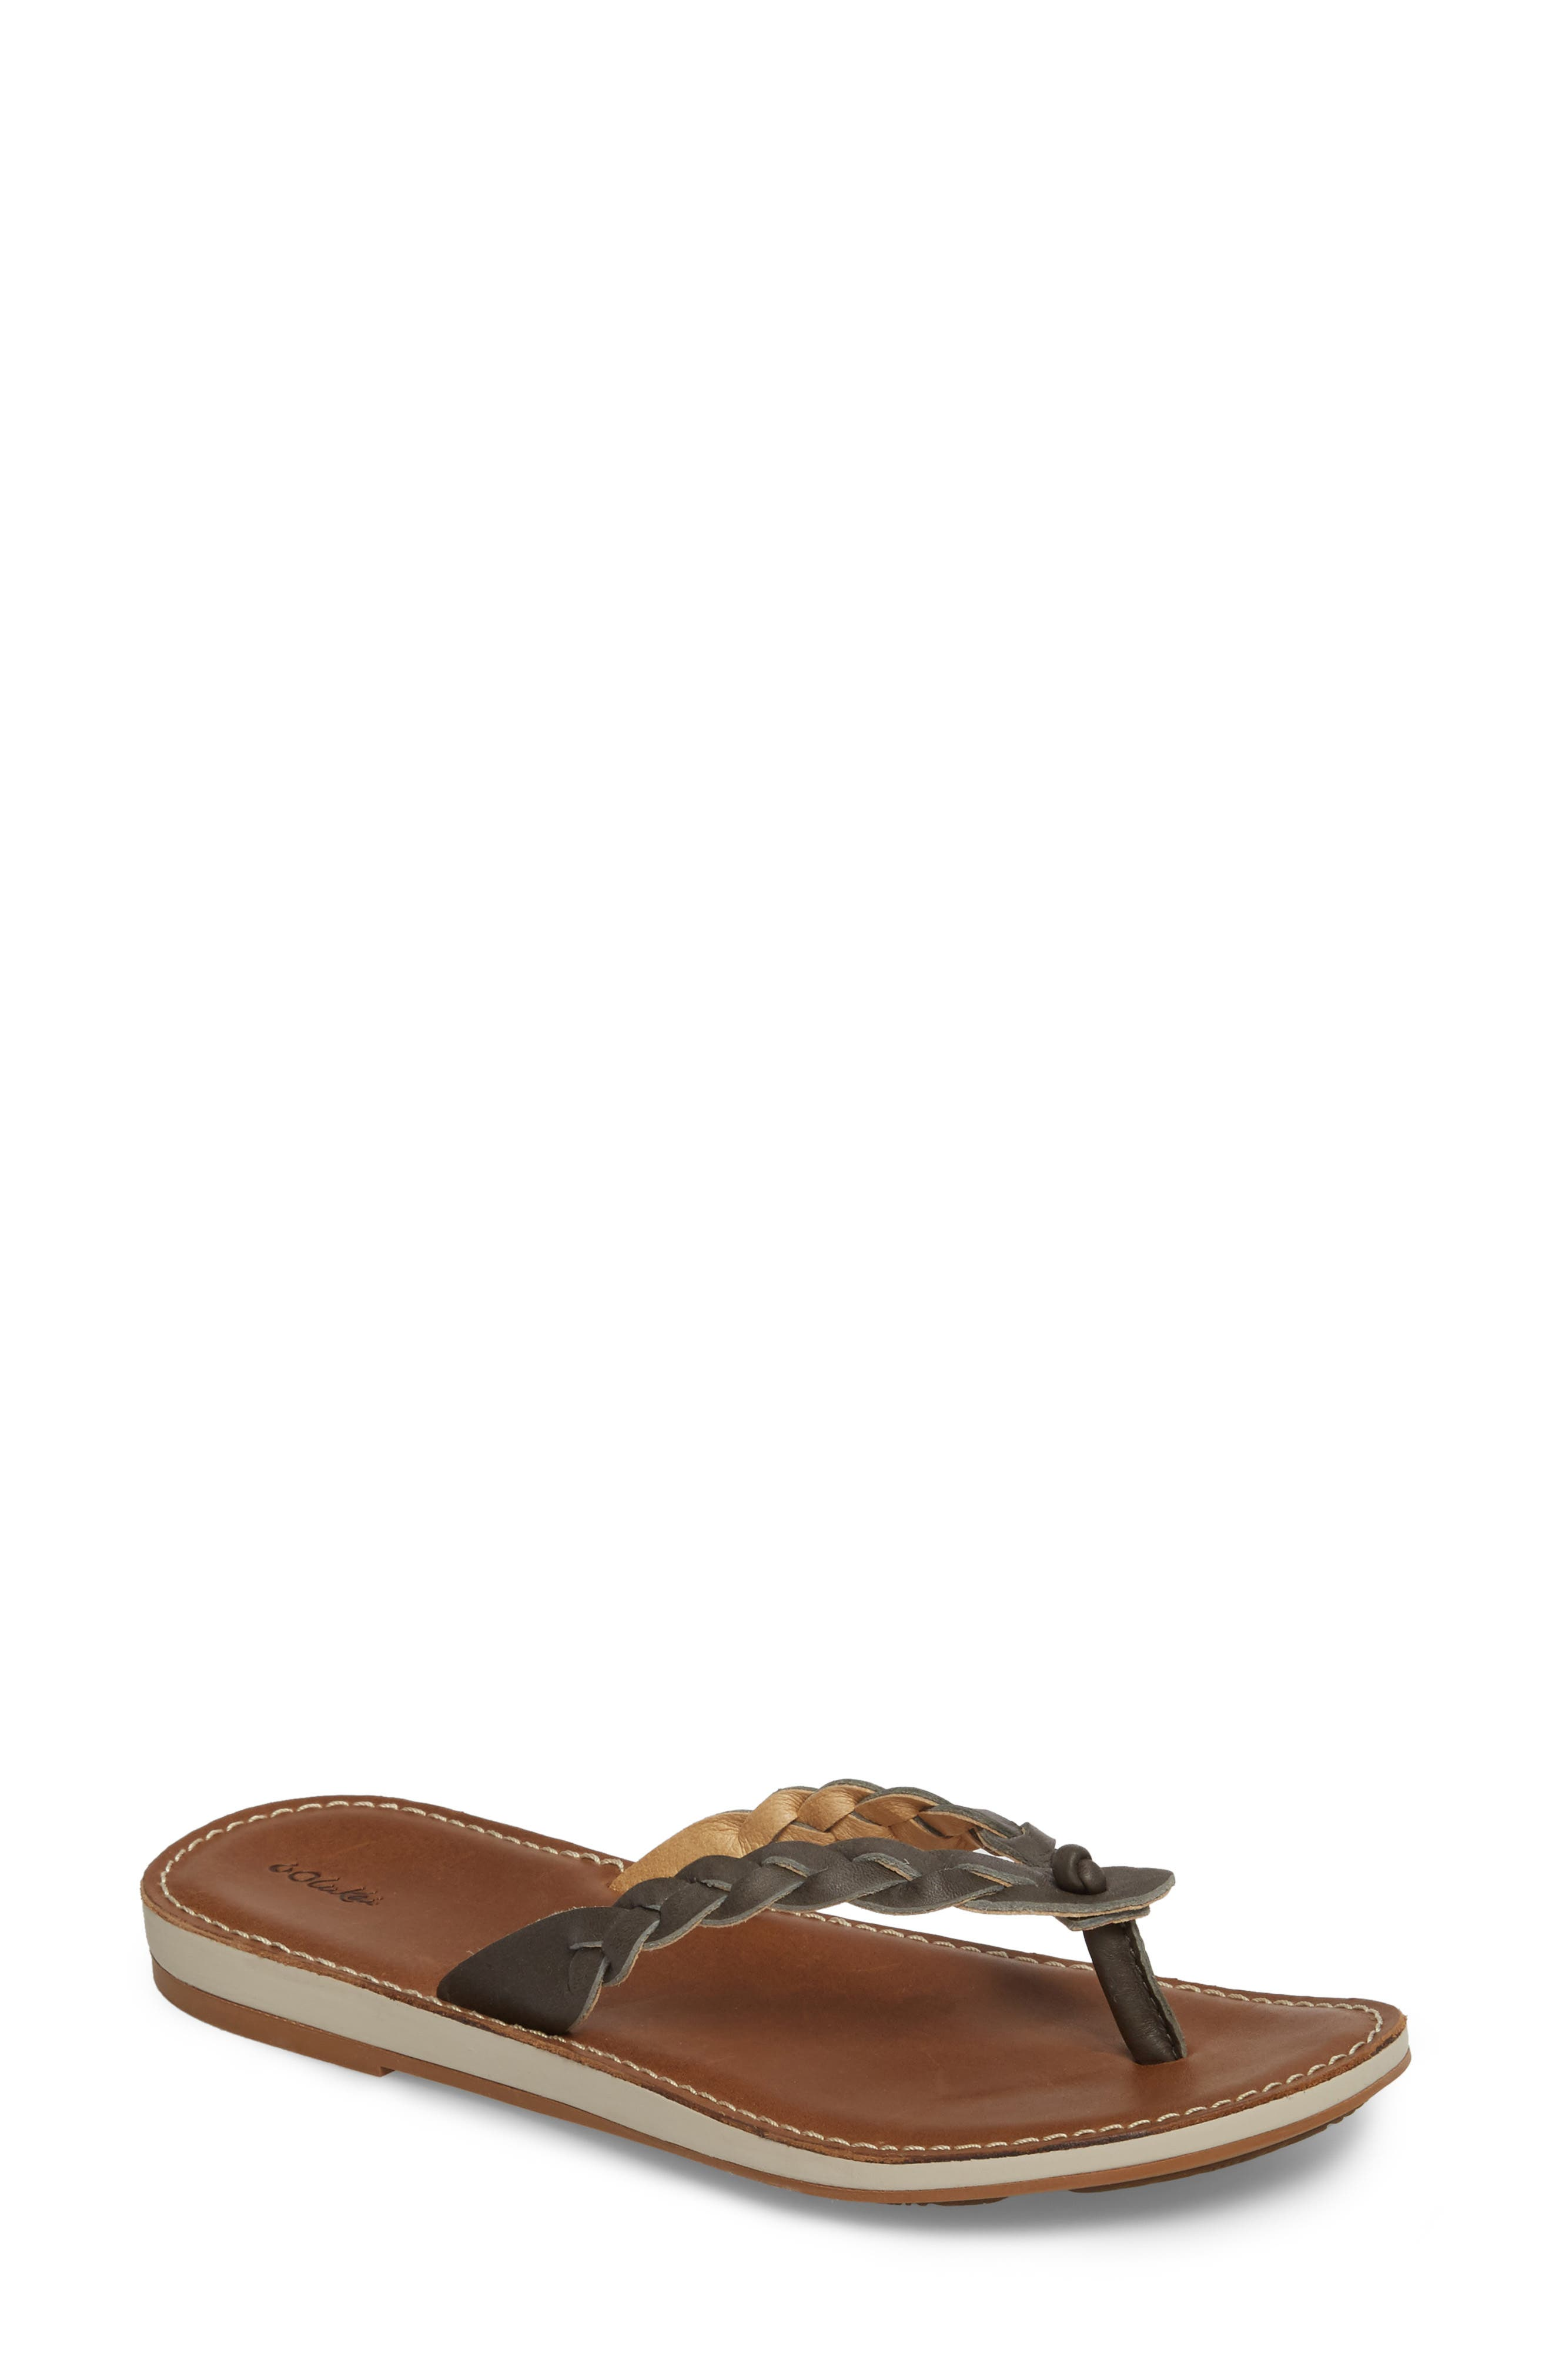 Kahiko Flip-Flop,                         Main,                         color, SLATE/ TAN LEATHER